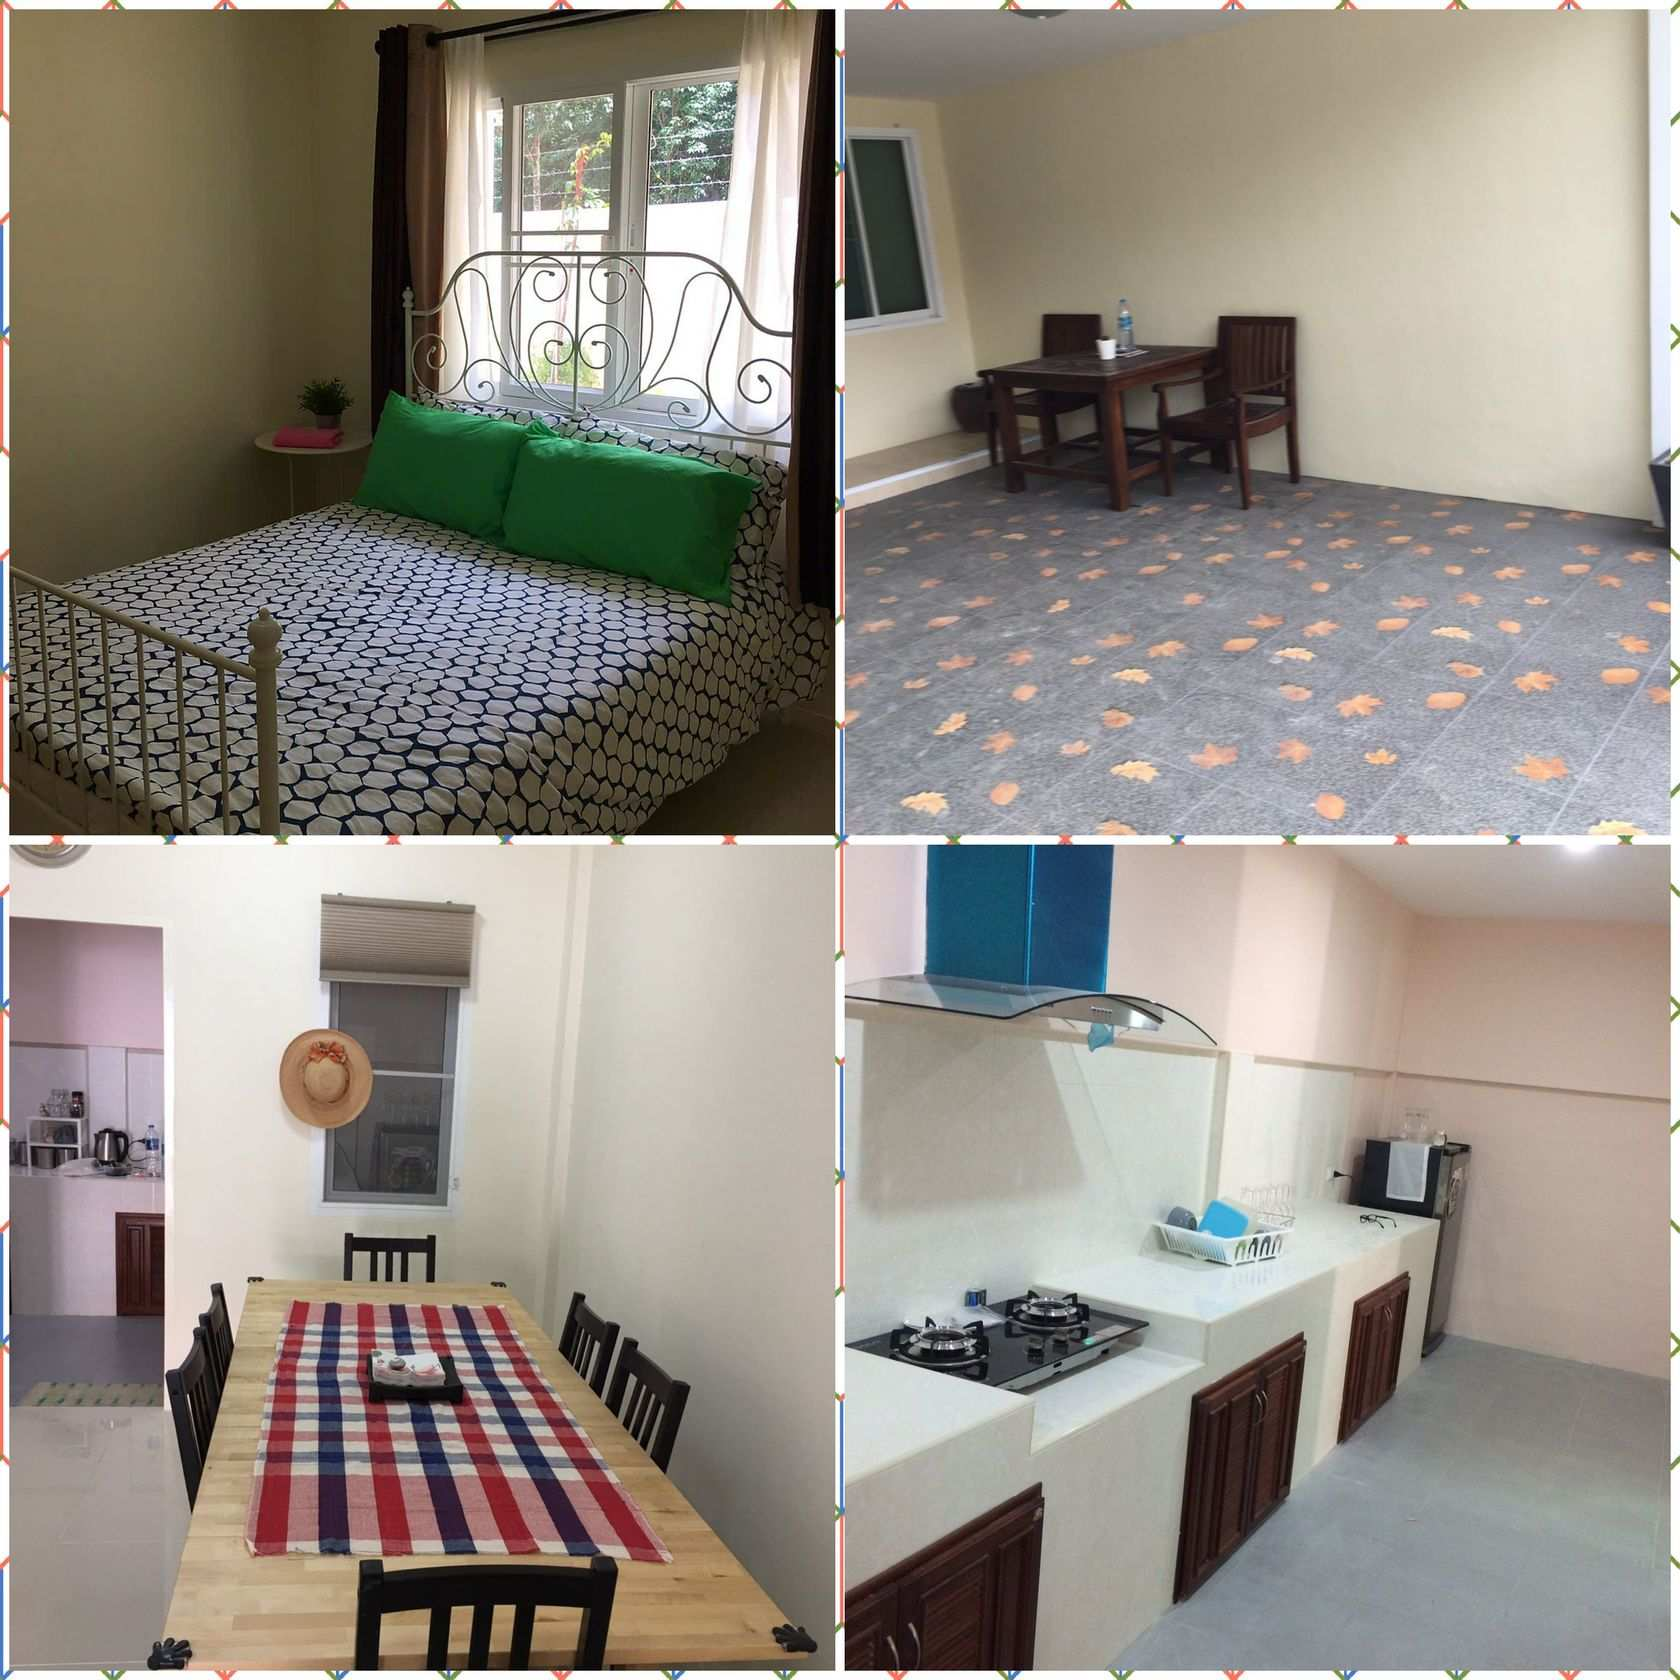 Available from december 31st 3 bedroom house In THALANG  for rent …..fully furnished fully aircon 15000 baht per month